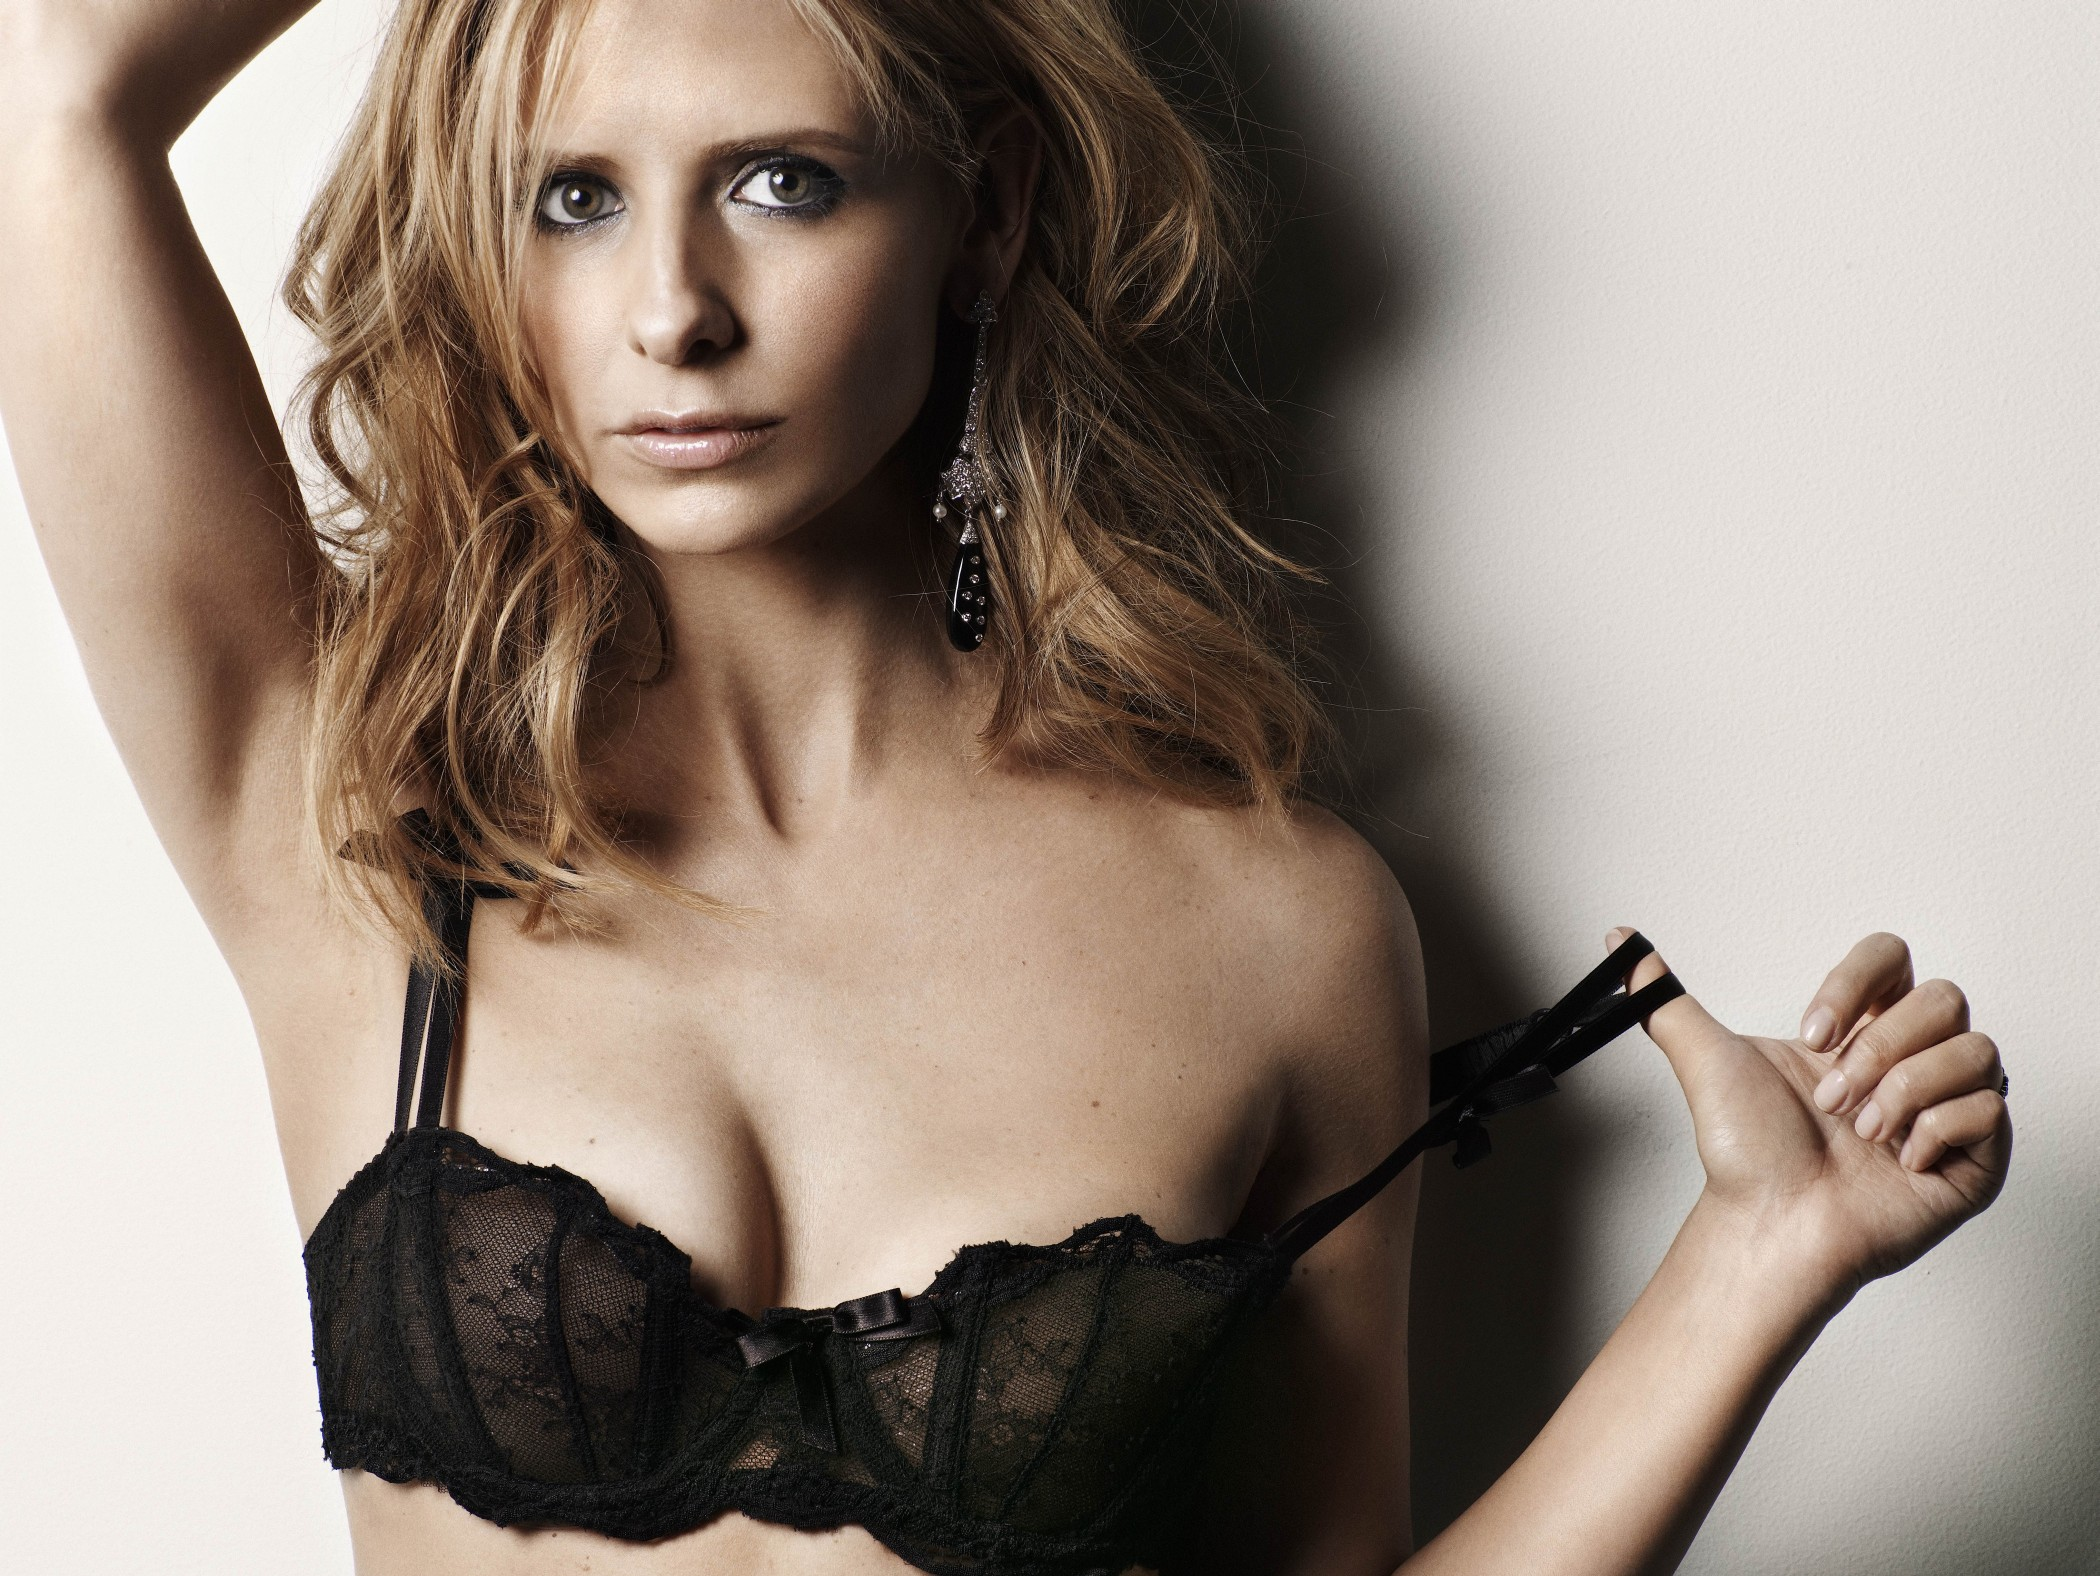 Michelle Gellar hot